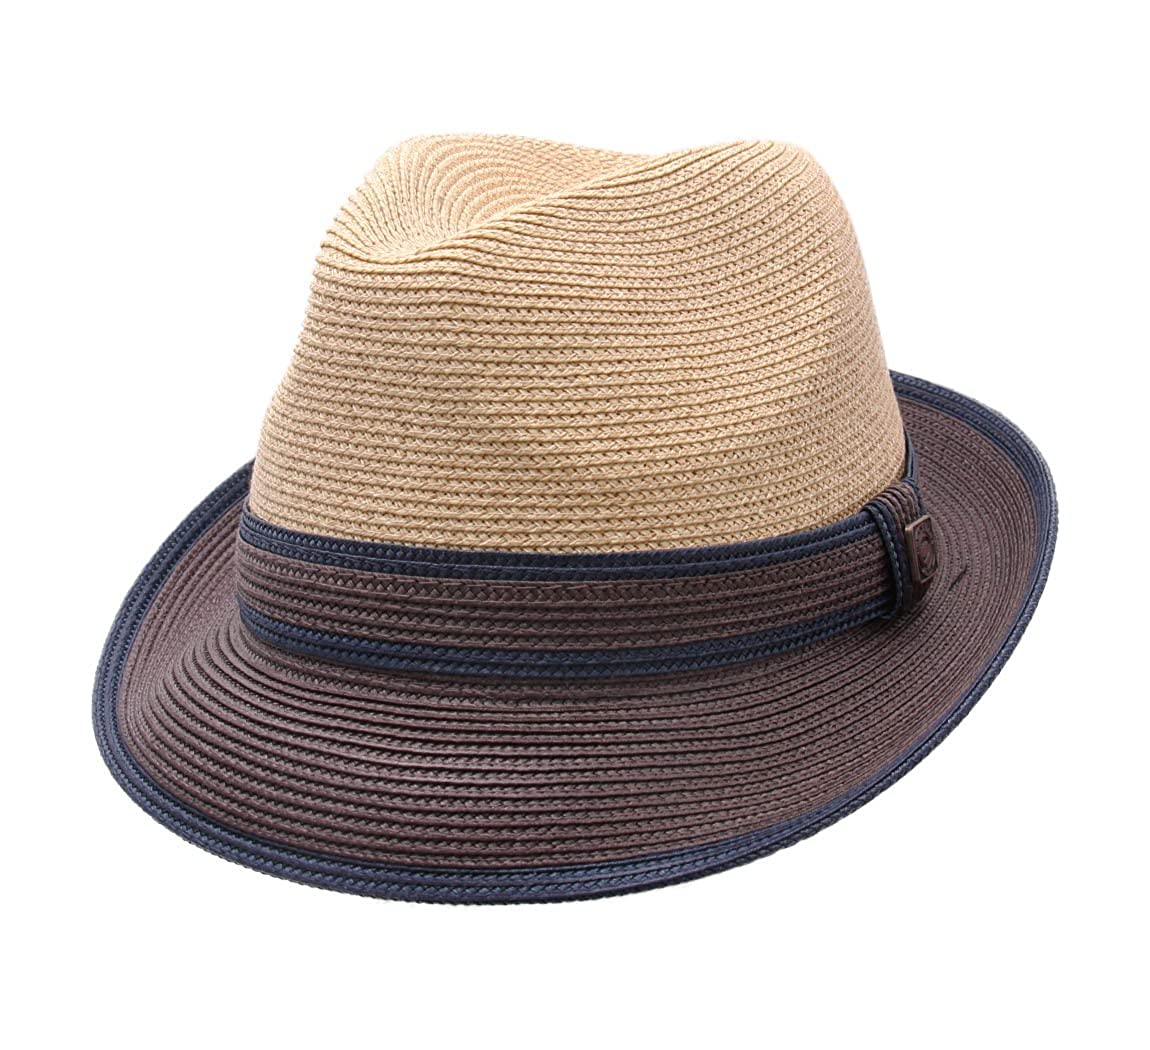 Dasmarca Benson Trilby Hat Packable